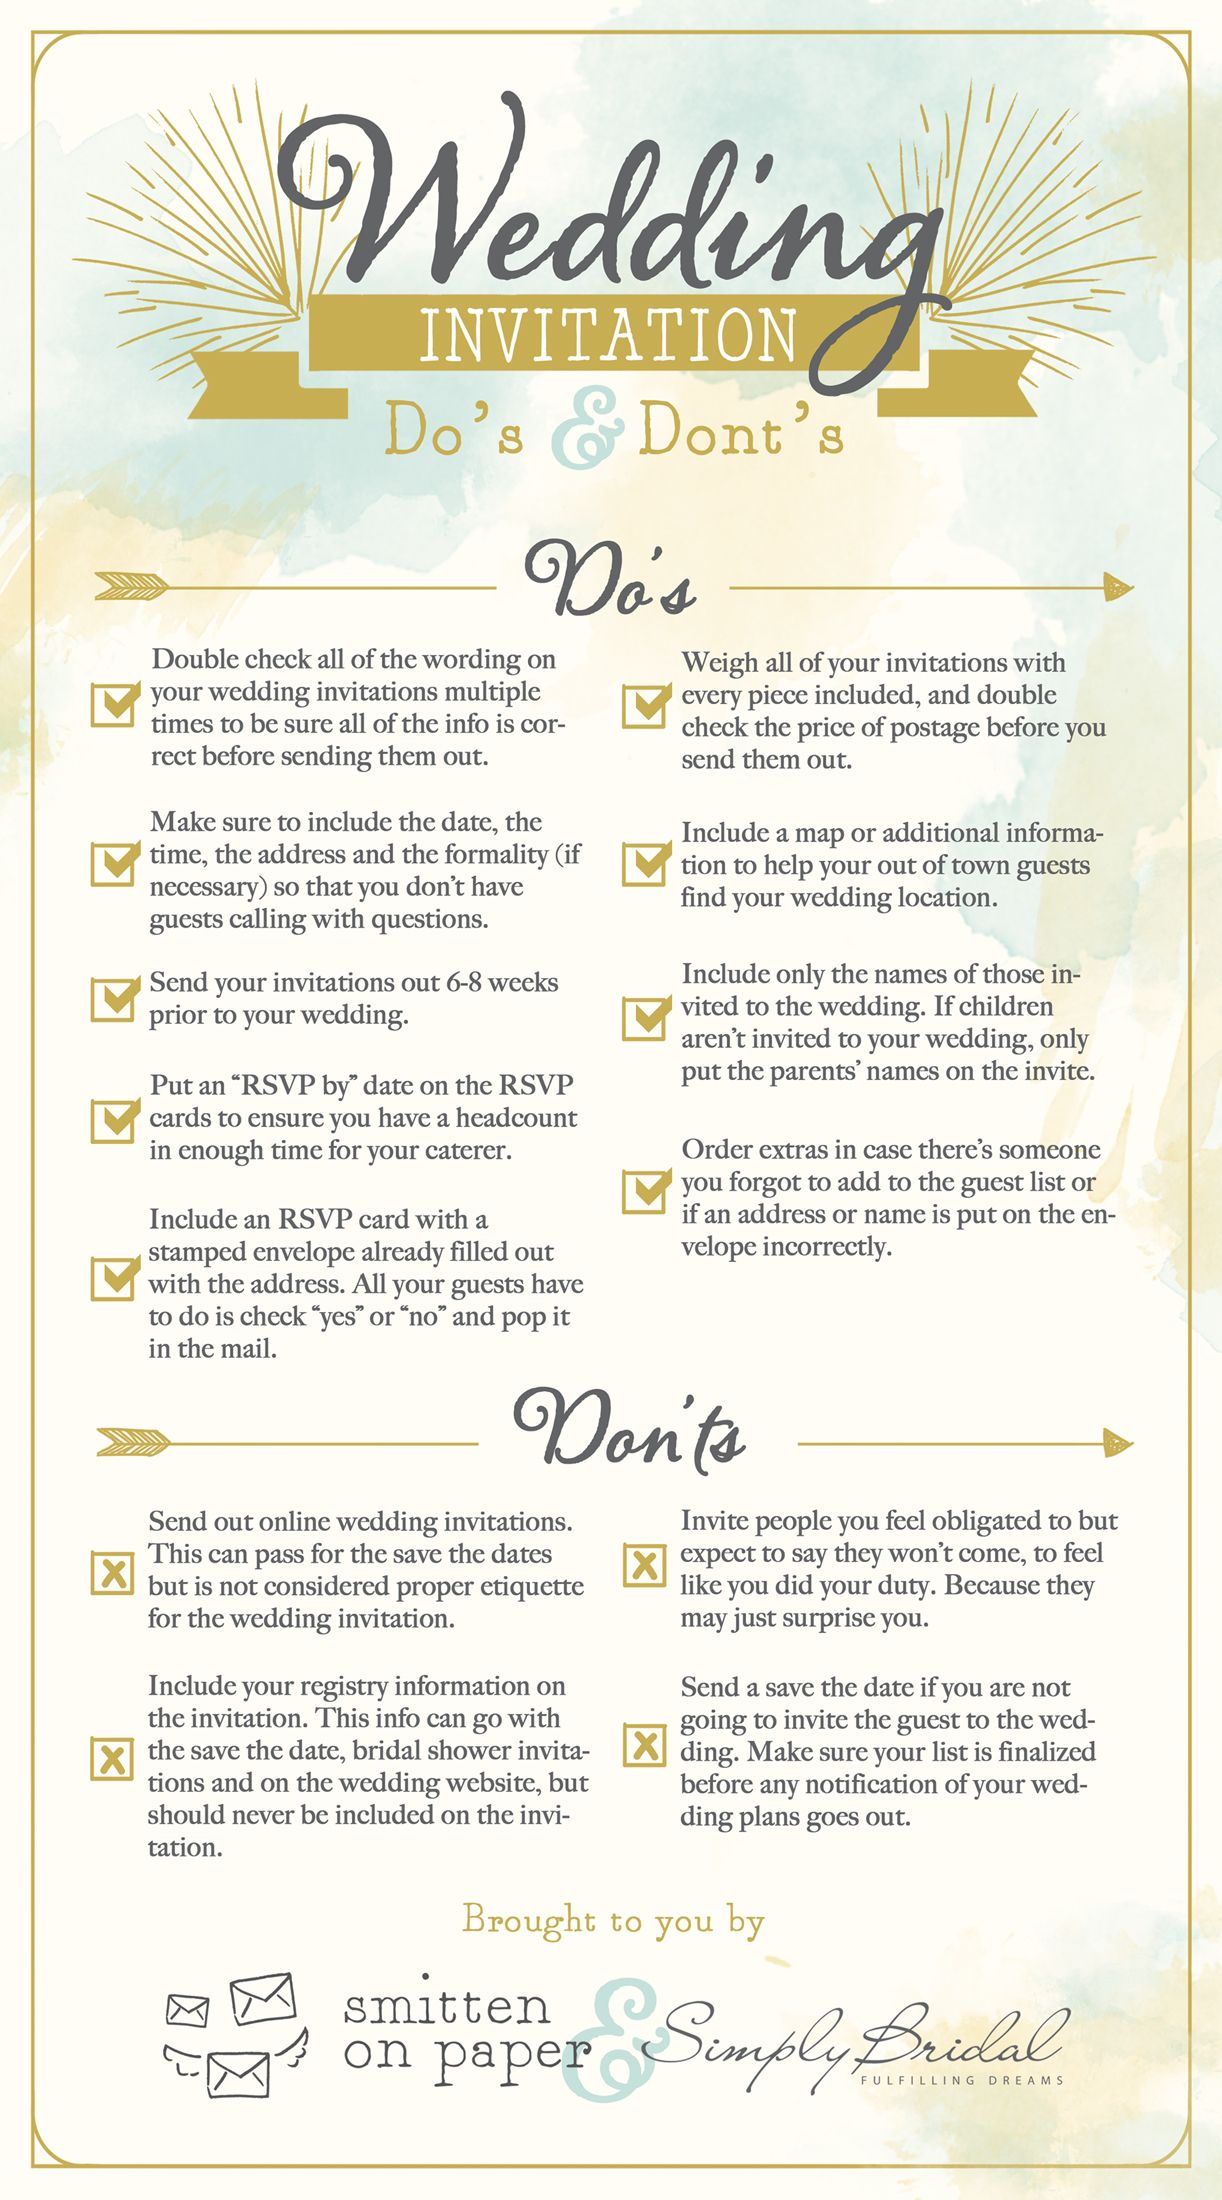 6 super helpful wedding invitation checklists wedding invitation wedding invitation etiquette dos donts chipotleweddingsweepstakes stopboris Gallery